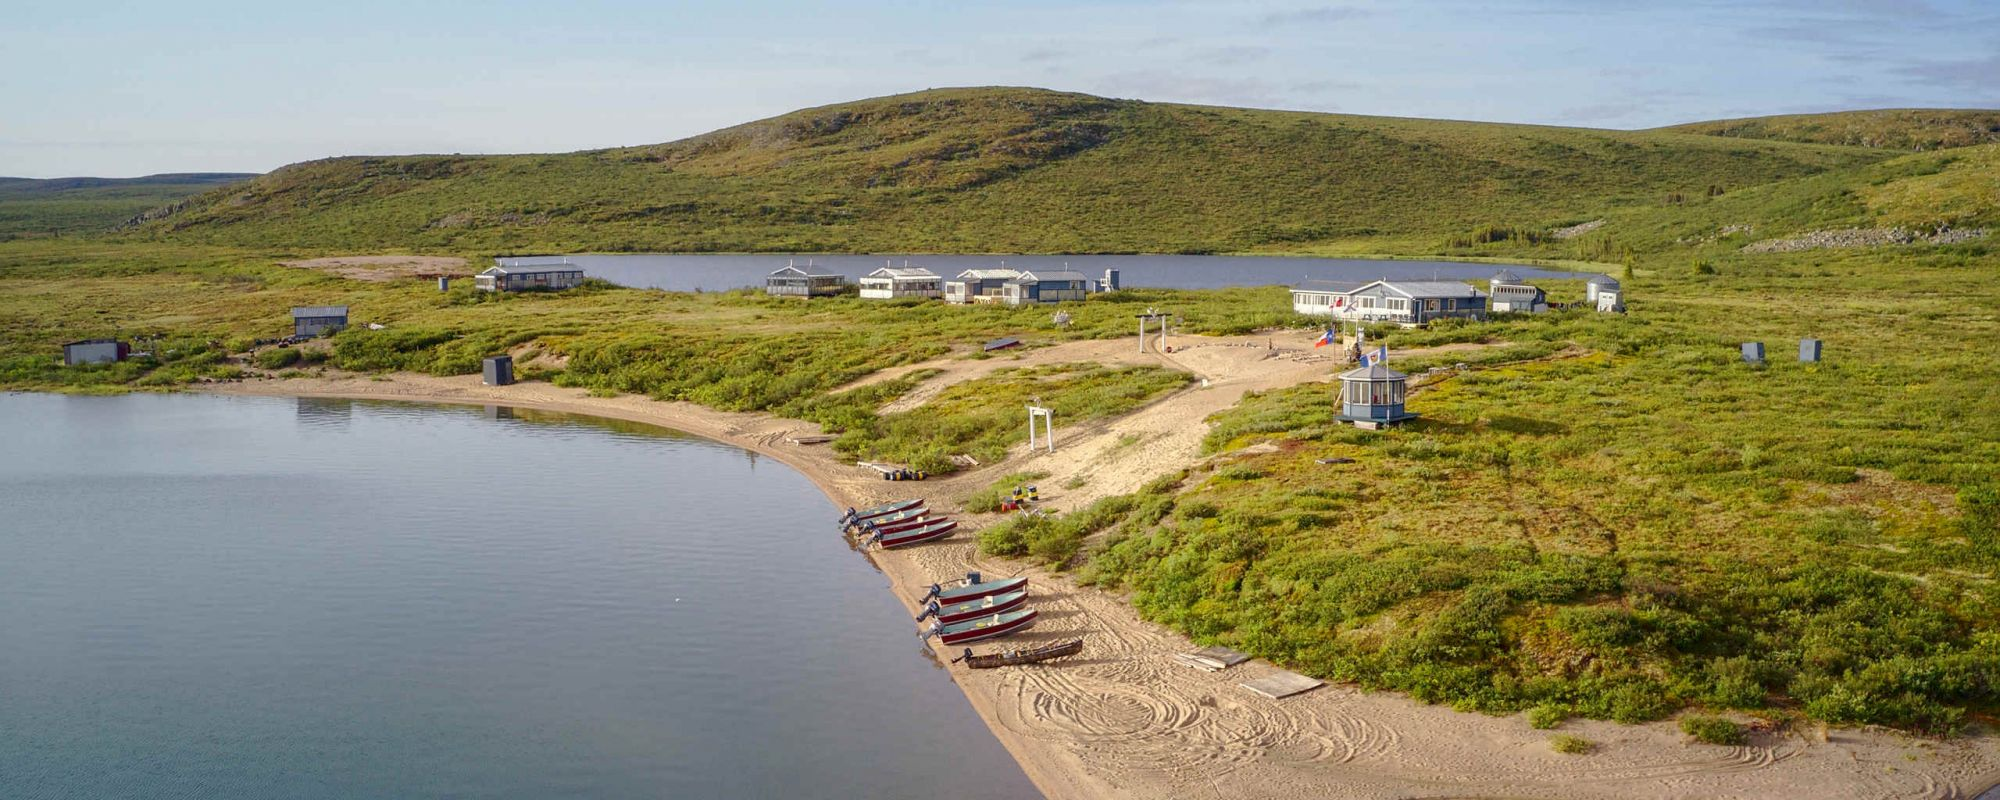 Lodge and boats on beautiful sand beach in the barrens